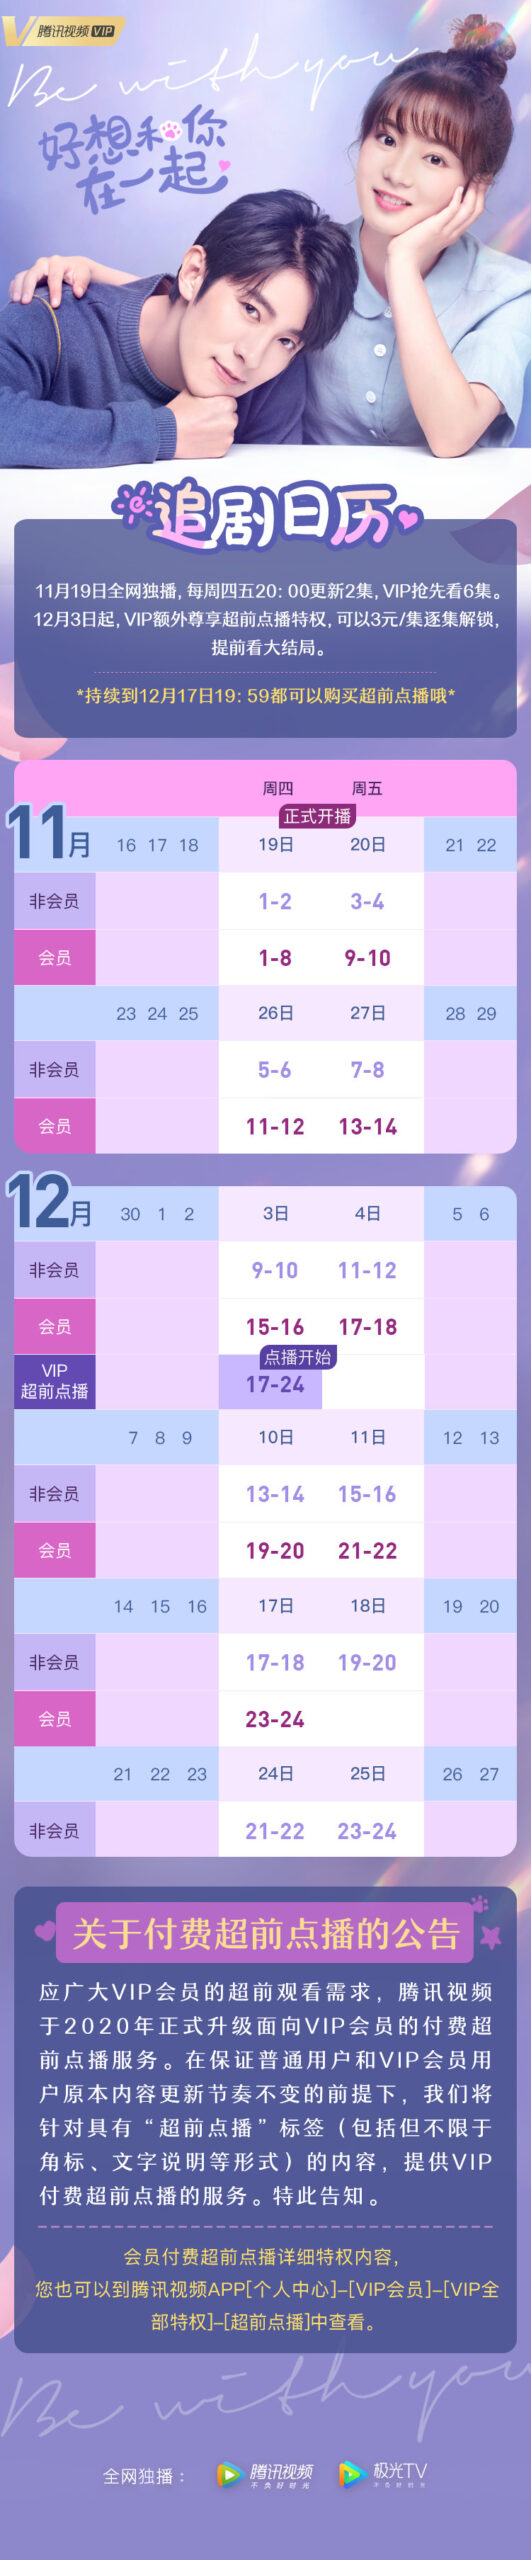 Be With You Chinese Drama Airing Calendar